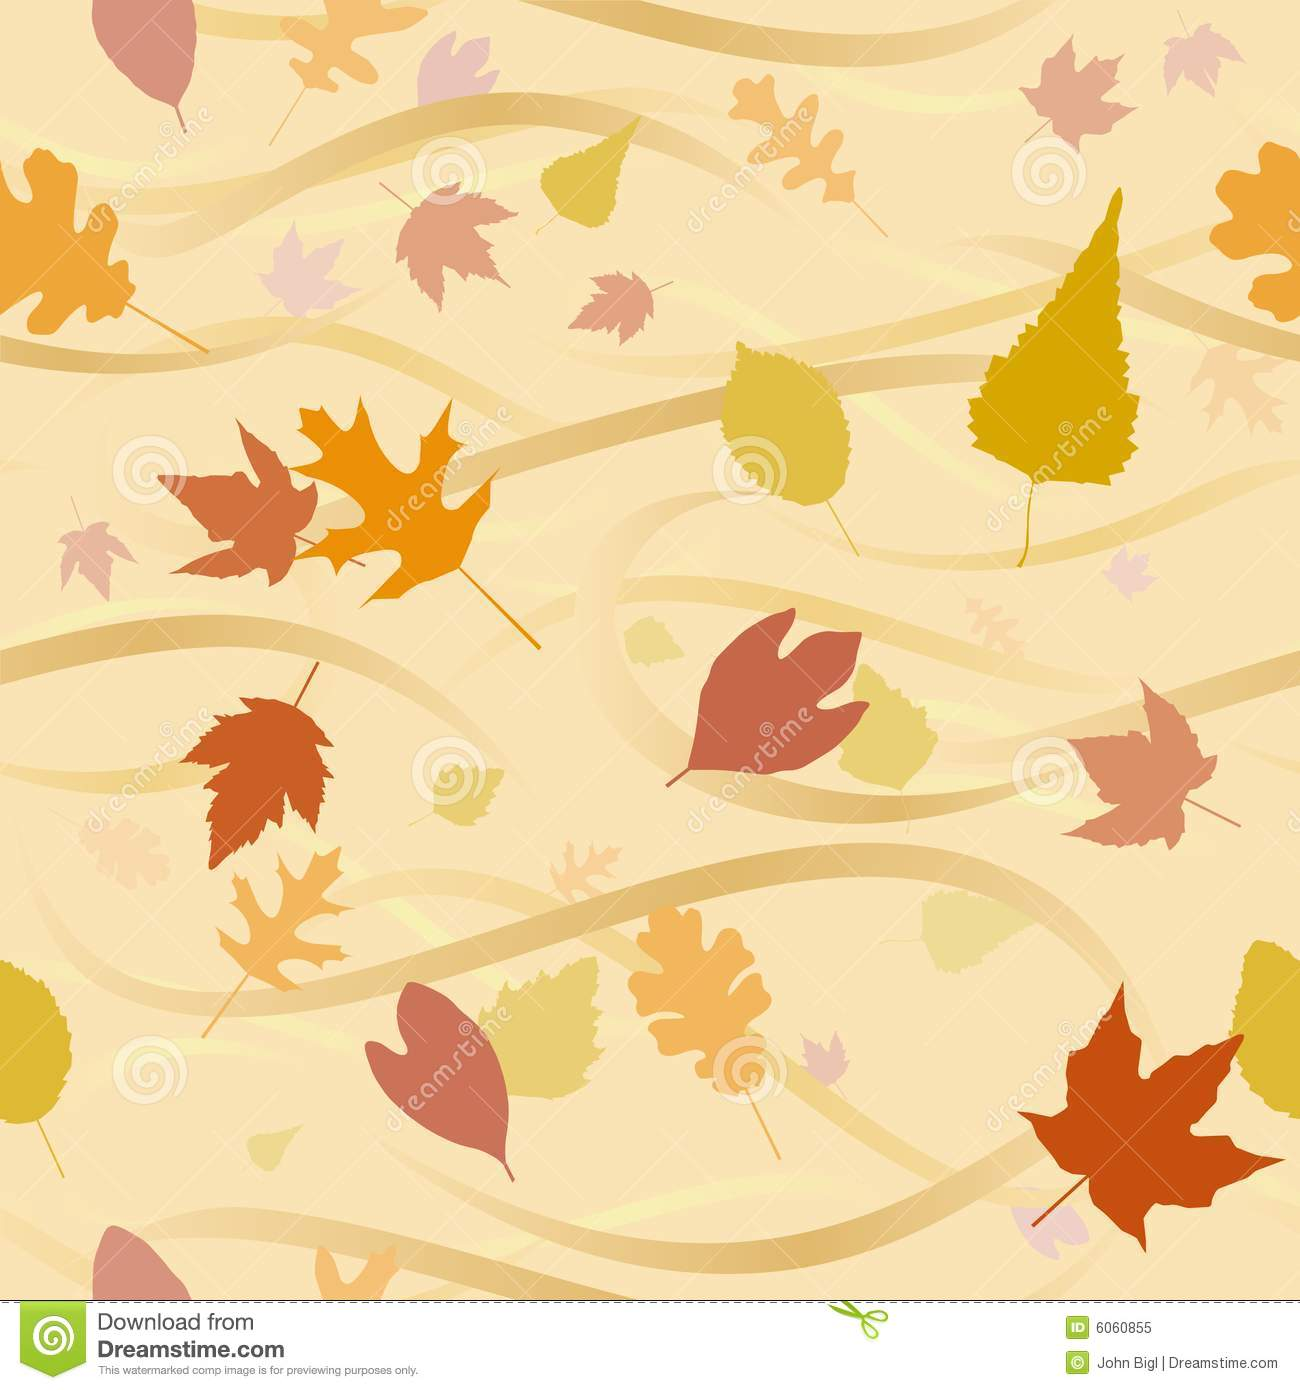 Fall Maple Leaf Tiled Wallpaper Autumn Wind Background Stock Vector Illustration Of